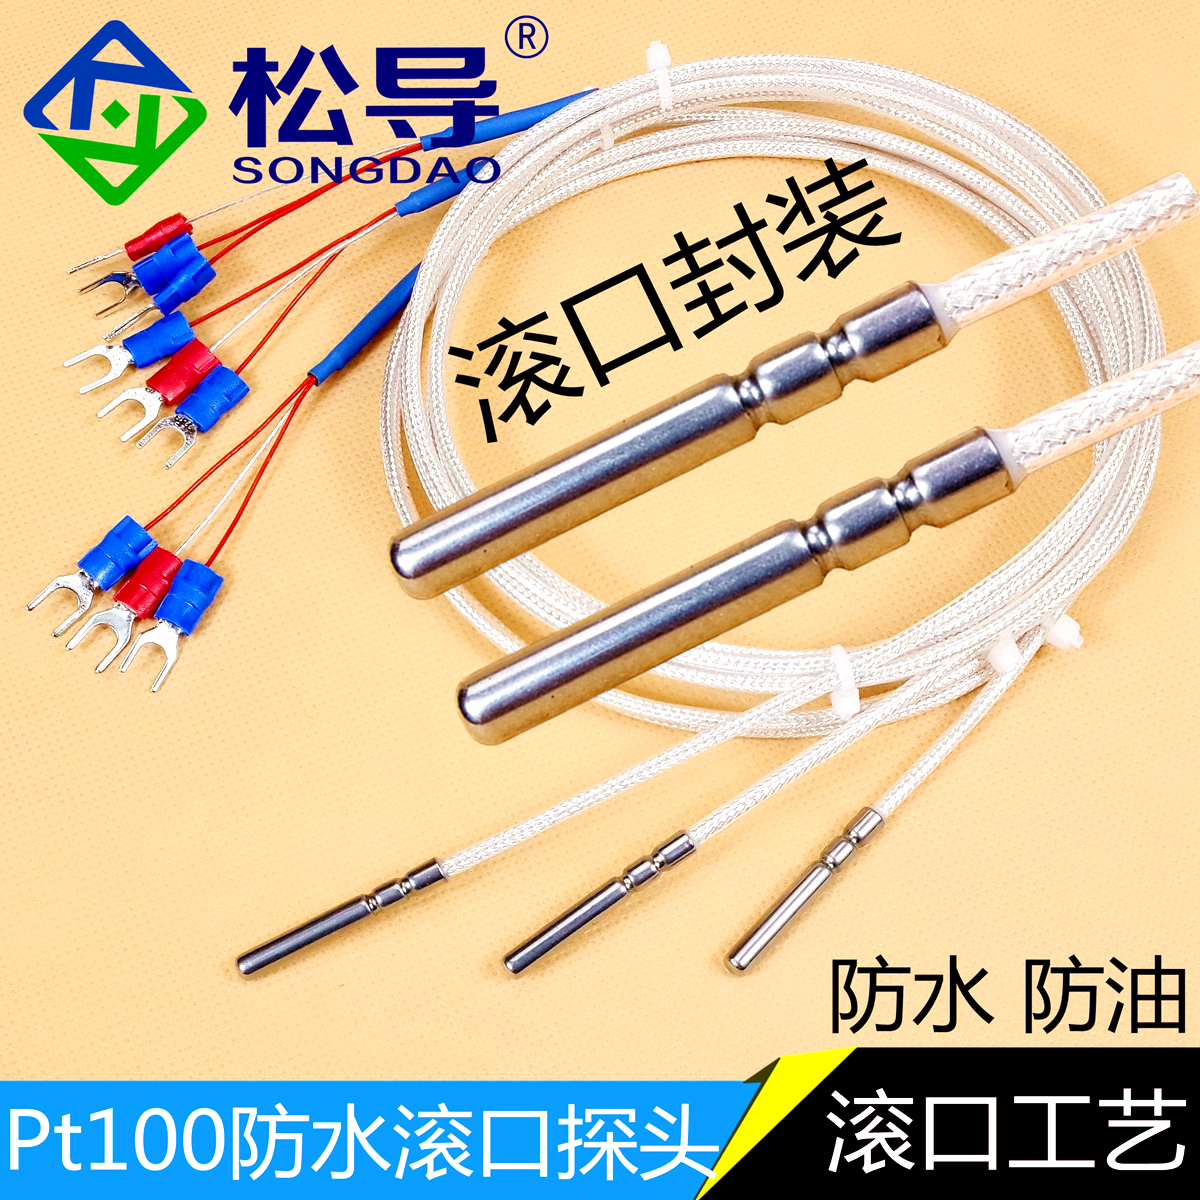 Pt100 Temperature Sensor Roller Package Waterproof and Oil-proof Temperature Probe Pt100 Platinum Thermal Resistance Thermocouple